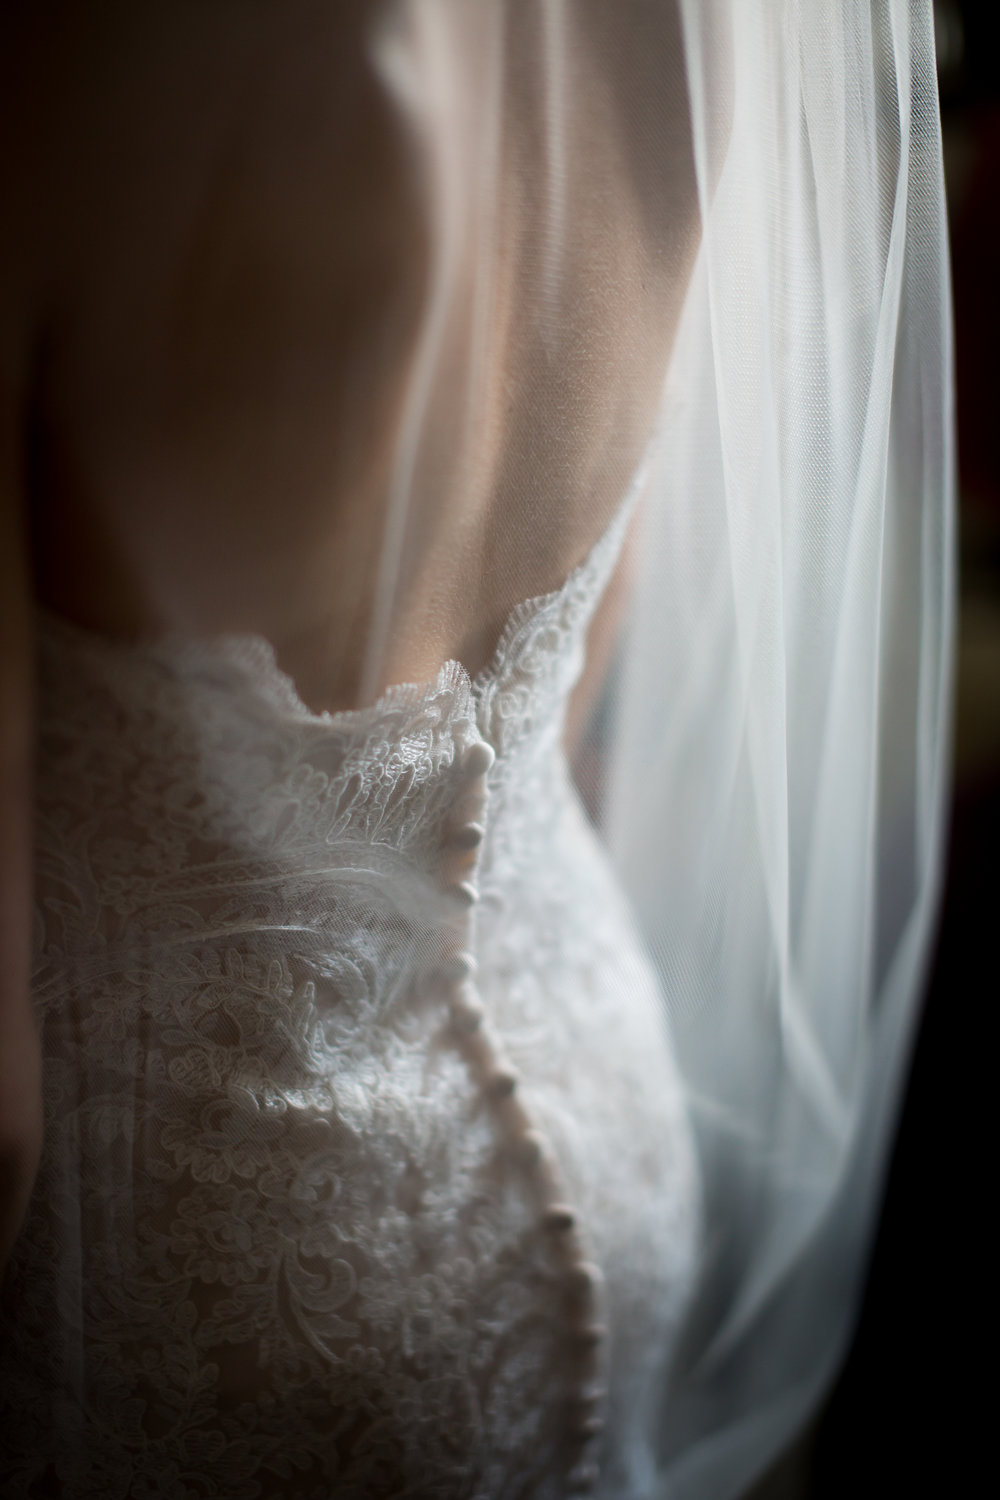 bride in wedding gown detail, buttons down the back of the dress, veil in front moody wedding photograph at Stonehouse Villa in Driftwood Texas